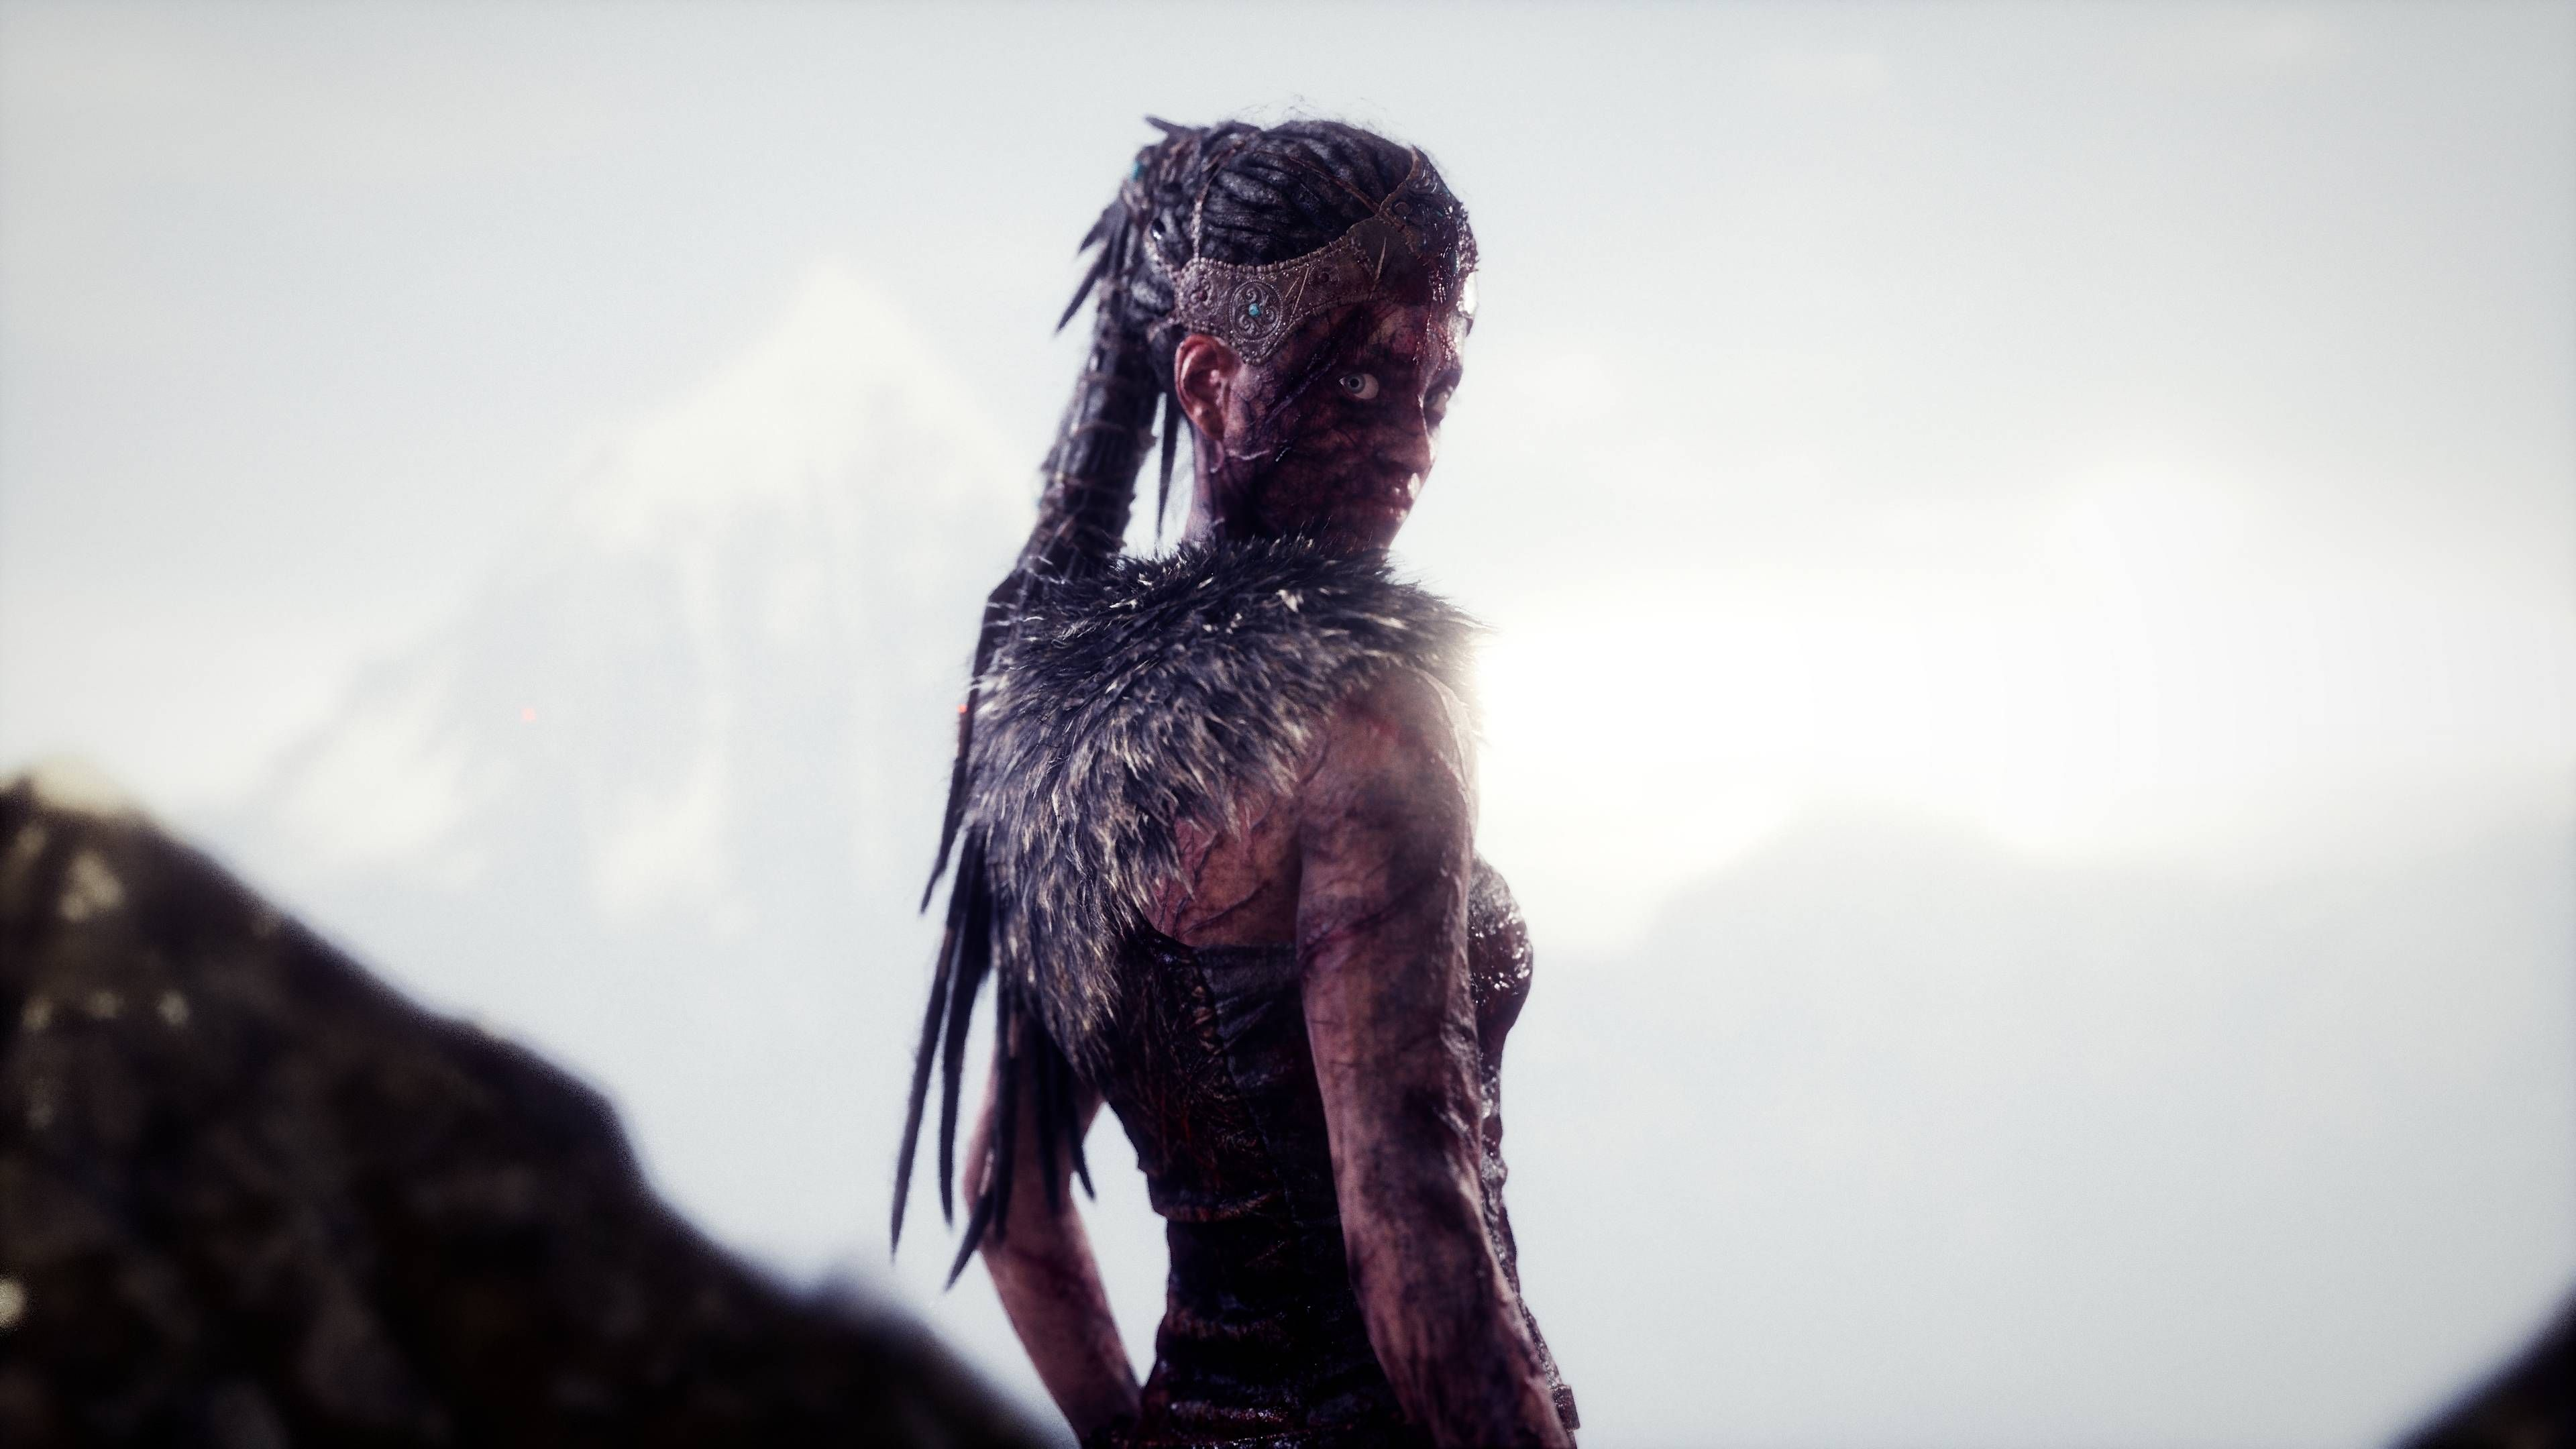 4k Screenshots From Hellblade Senua S Sacrifice Sacrifice